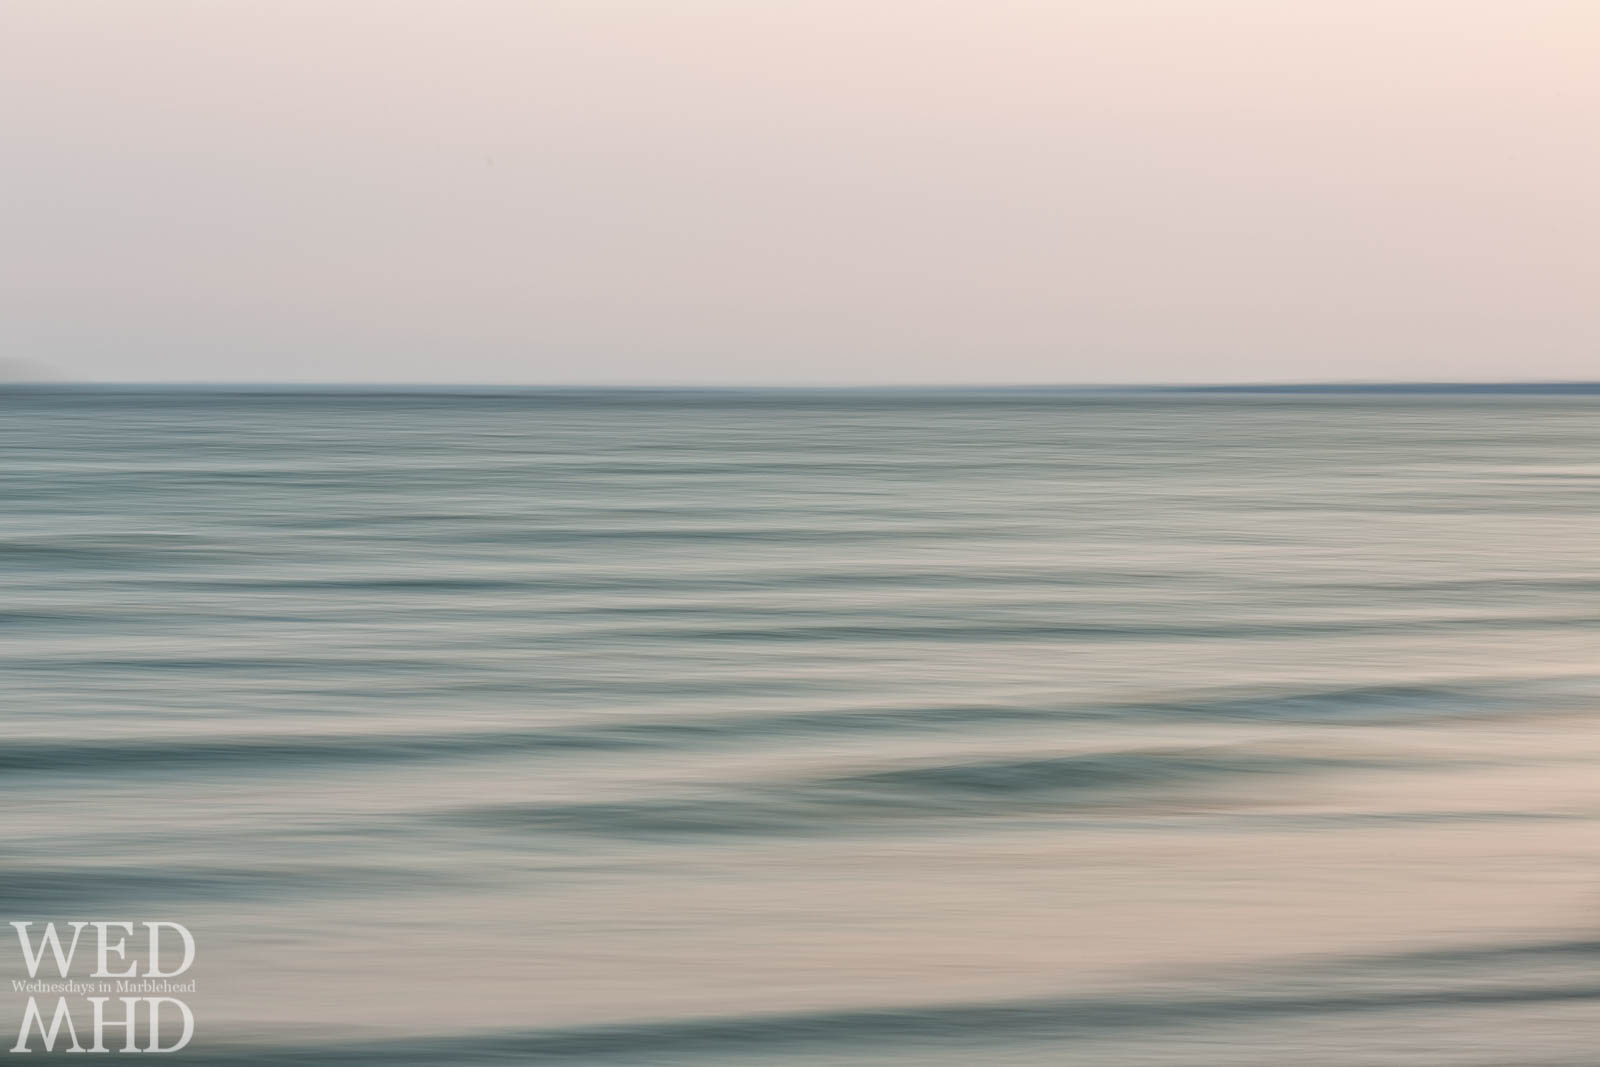 Intentional Camera Movement – Ocean at Sunset